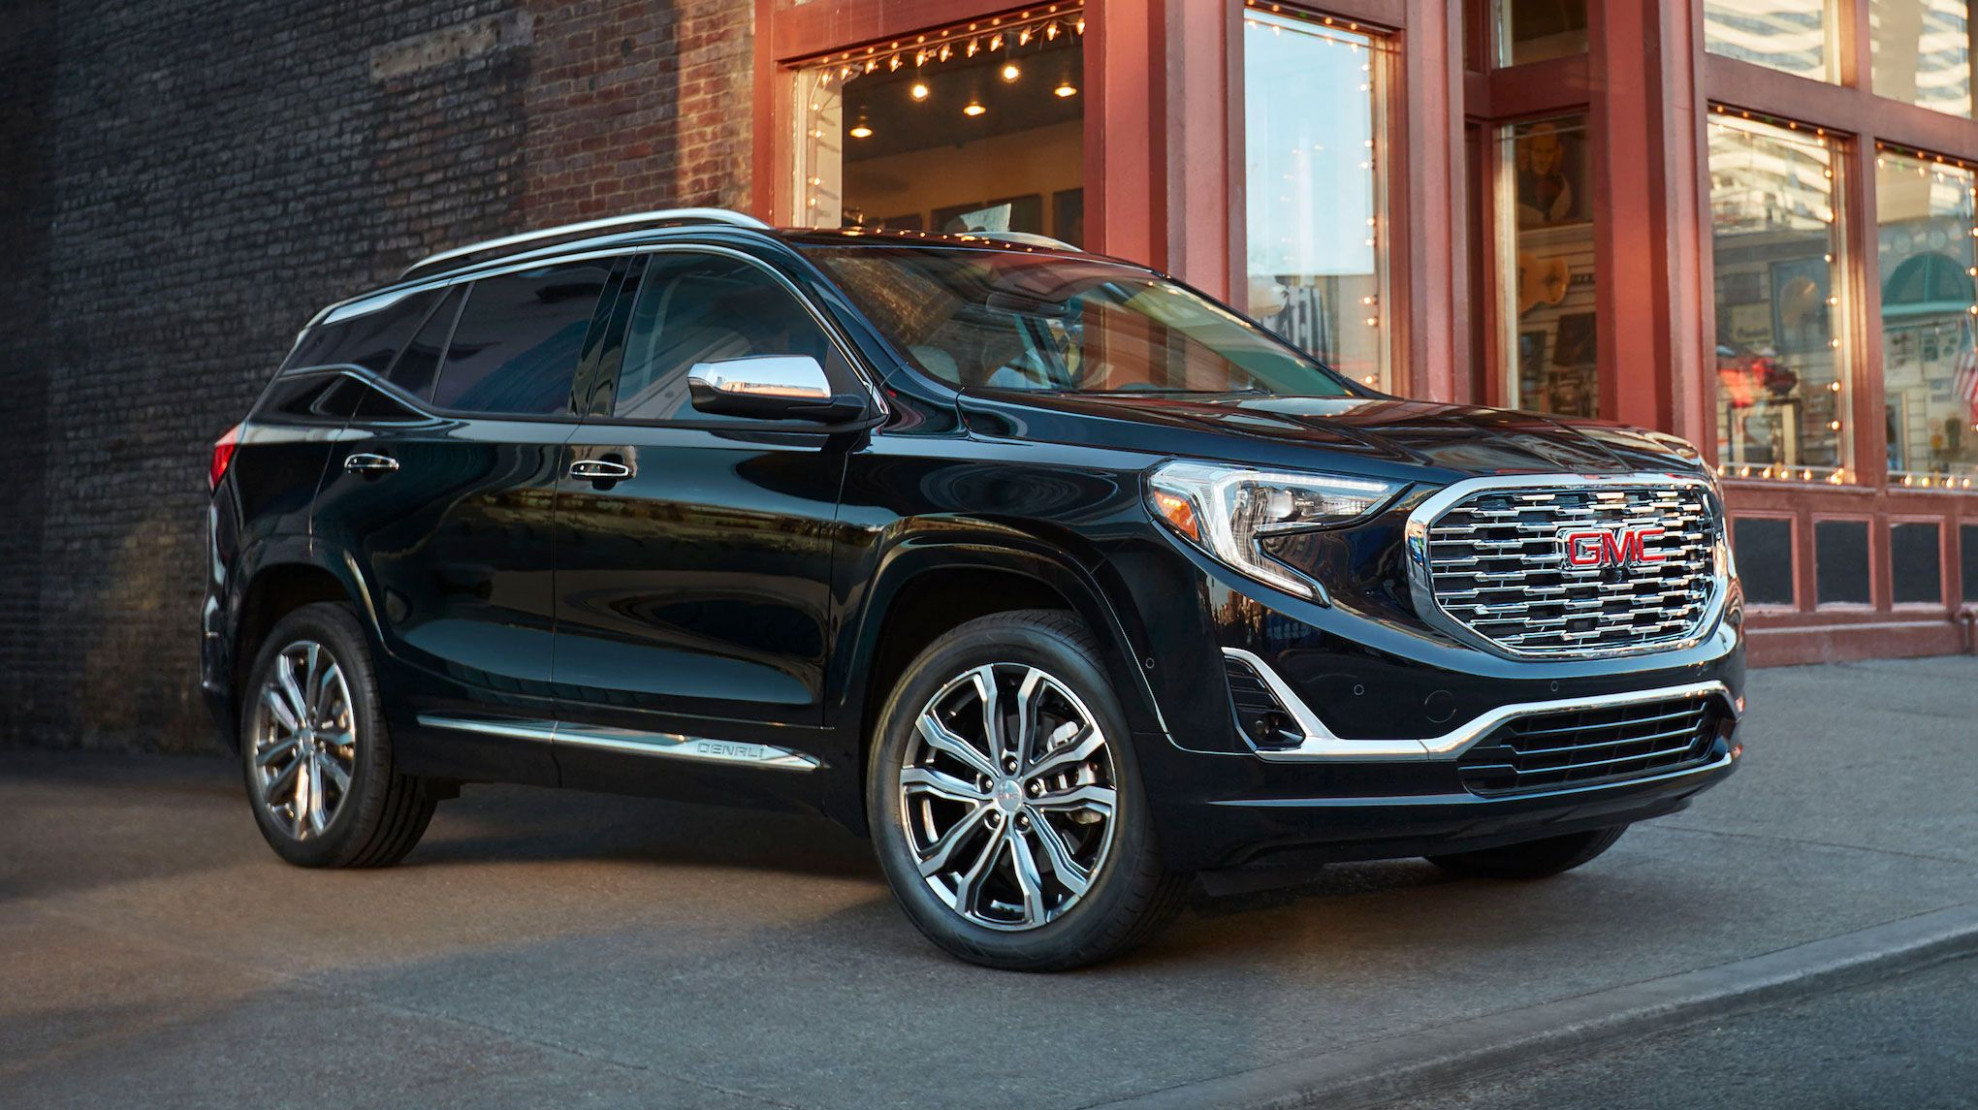 7 GMC Terrain Review, Pricing, and Specs - gmc suv 2020